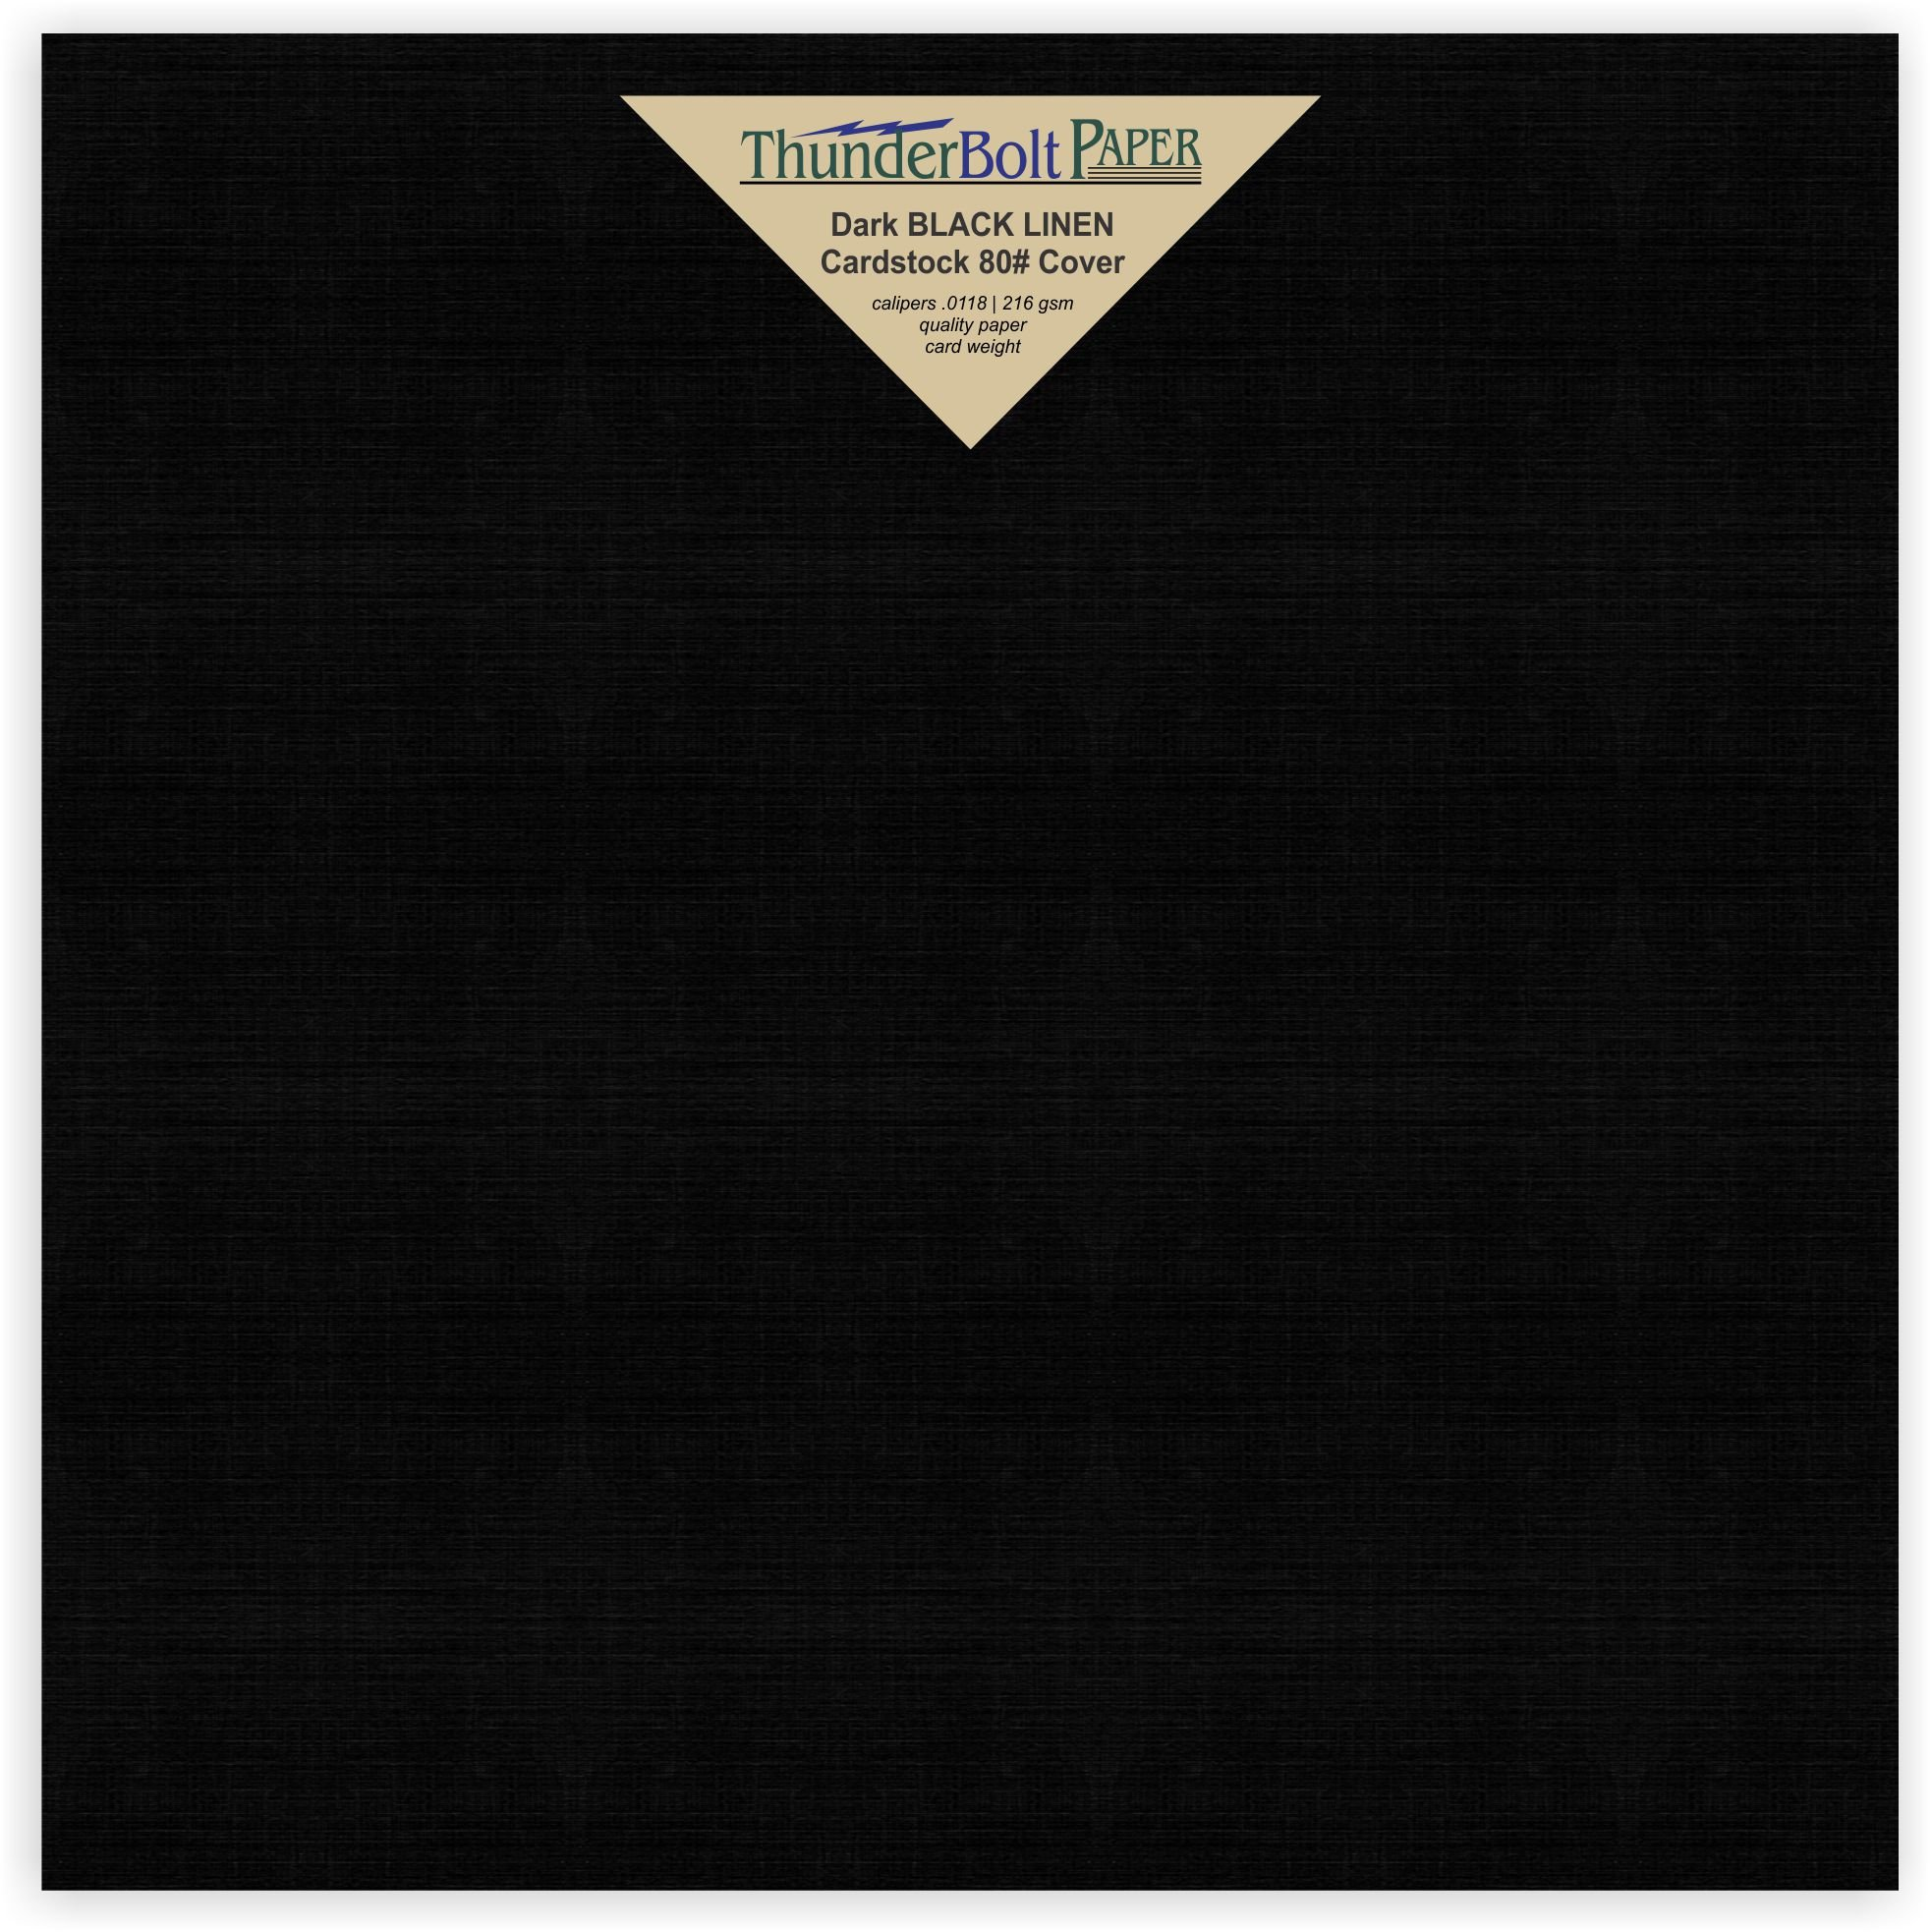 100 Black Linen 80# Cover Paper Sheets -9'' X 9'' (9X9 Inches) Scrapbook Album Cover Square Size- Card Weight - Deep Dye, Fine Linen Textured Finish - Quality Cardstock